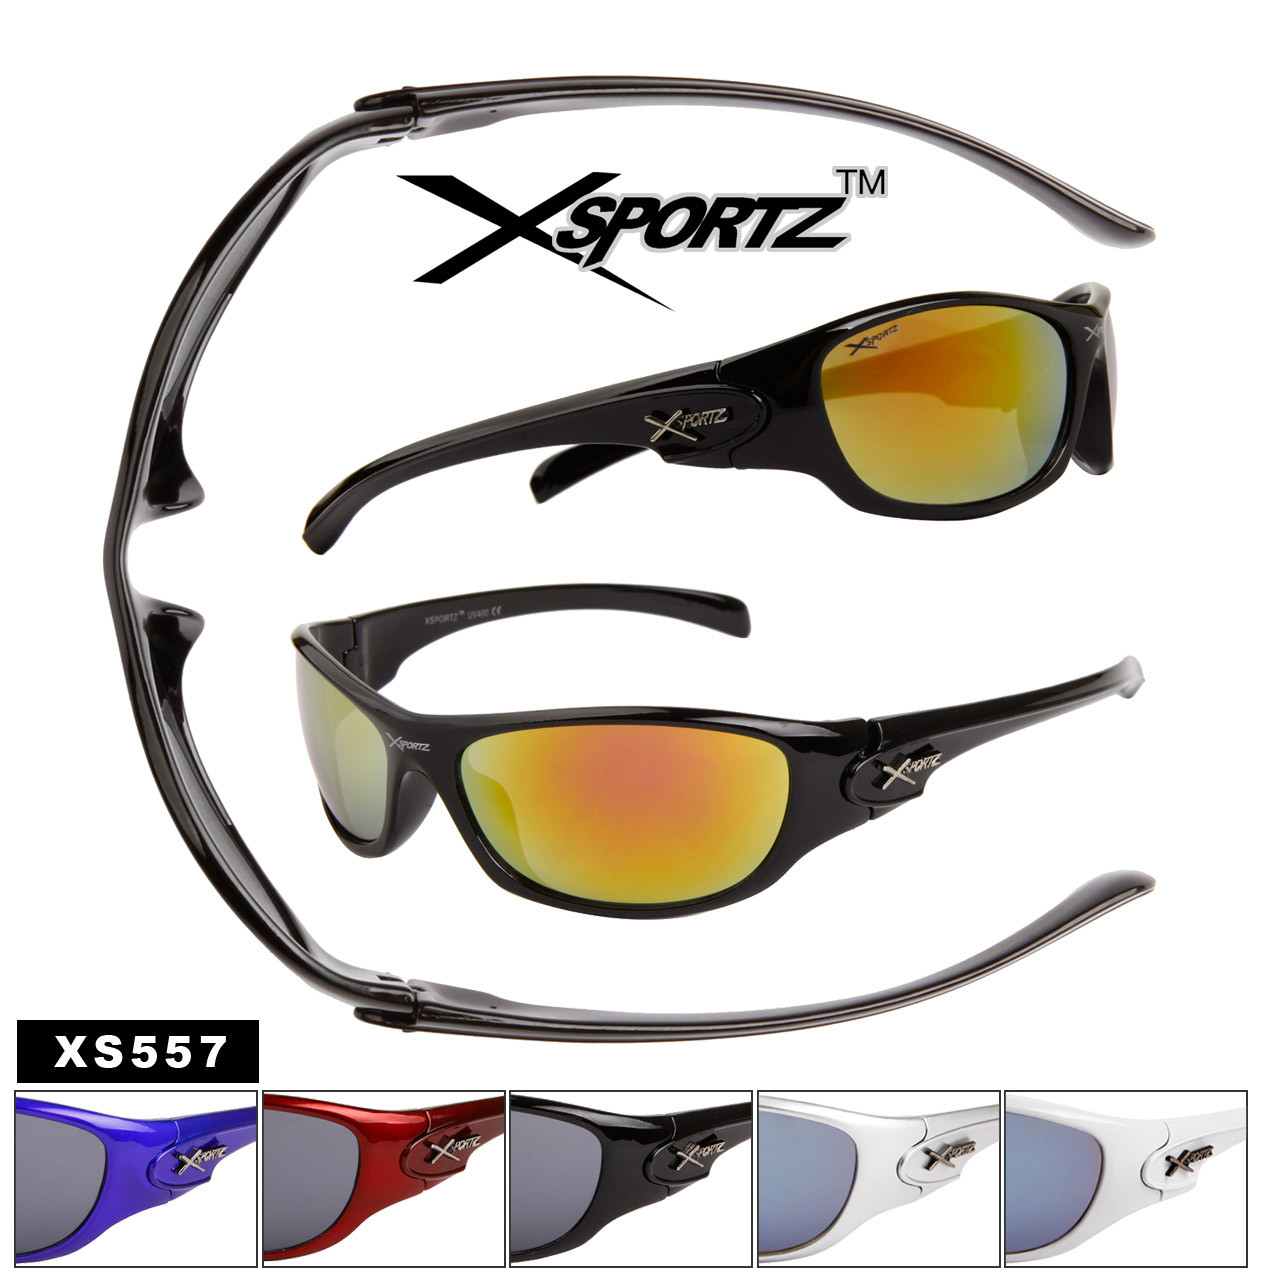 Xsportz™ Sports Wholesale Sunglasses - Style #XS557